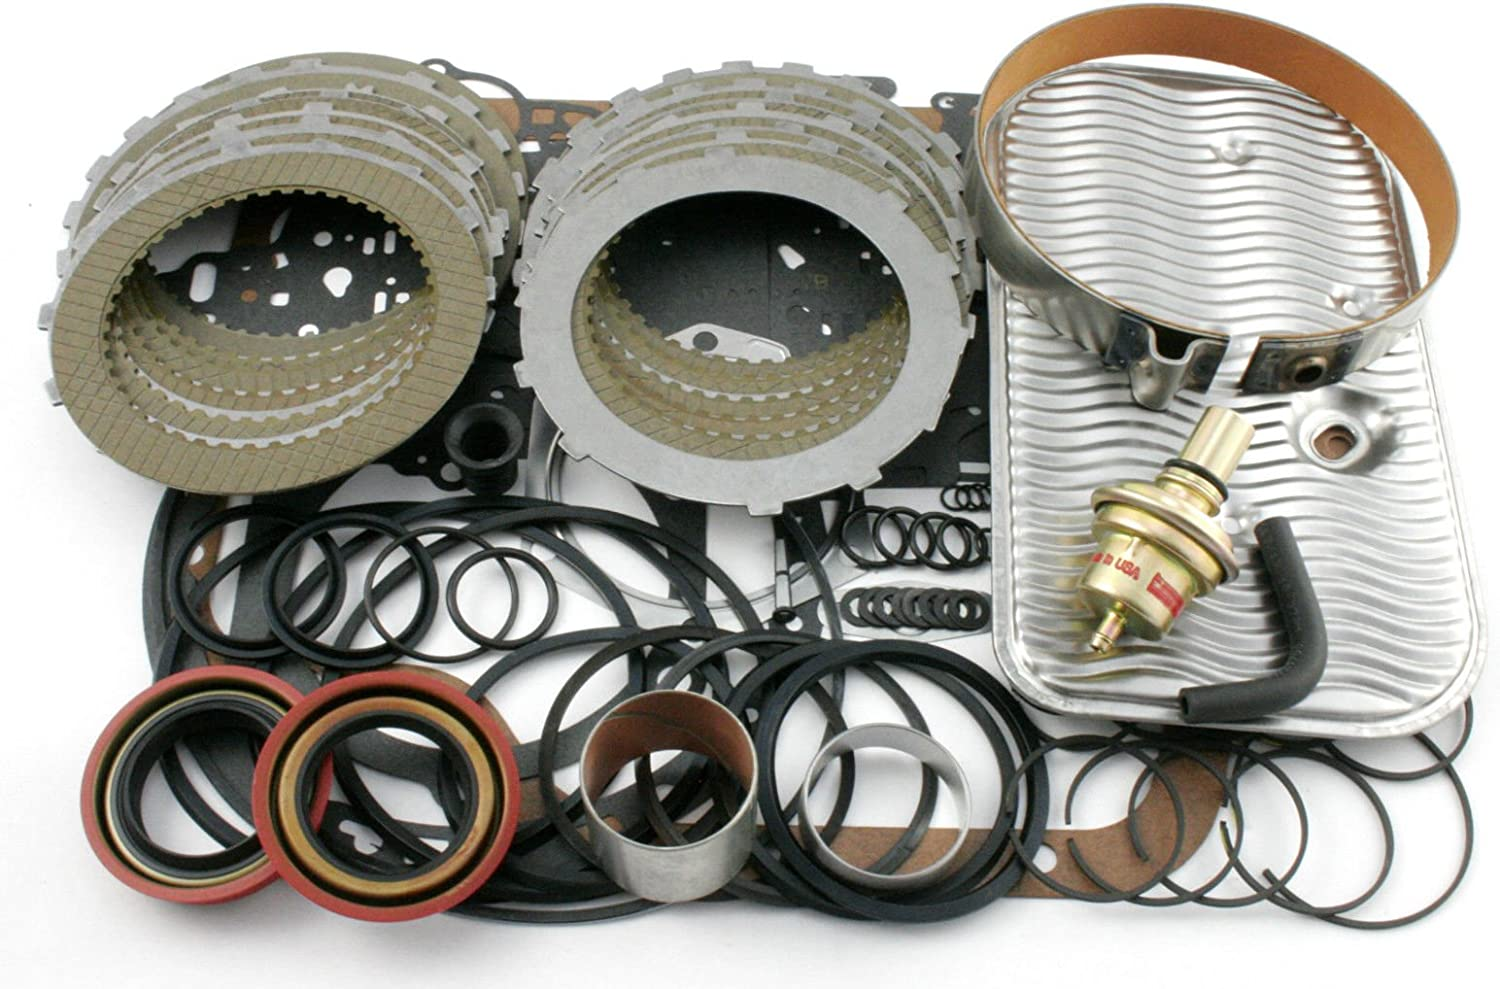 Outlet SALE Compatible With: Chevy GM TH400 Max 55% OFF Alto Maste Transmission